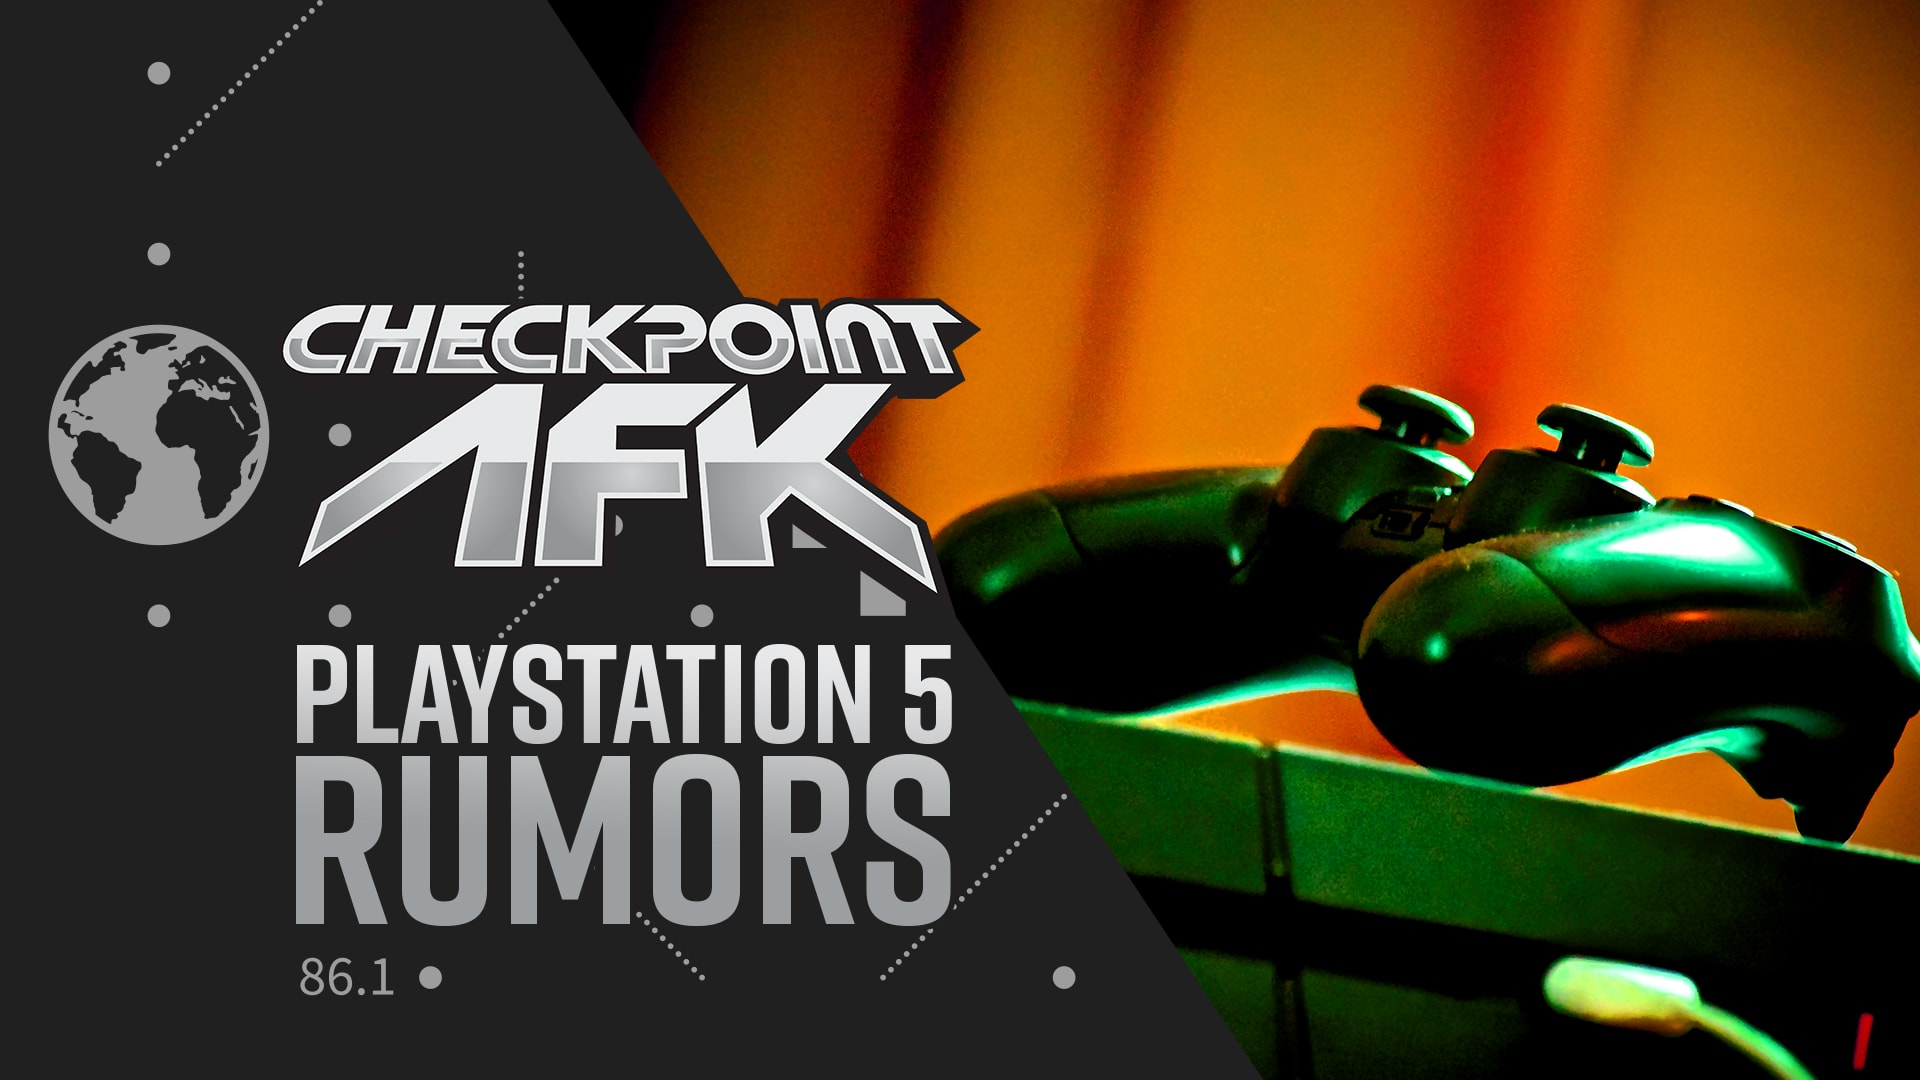 Addressing the PlayStation 5 Price Rumors - CheckpointAFK